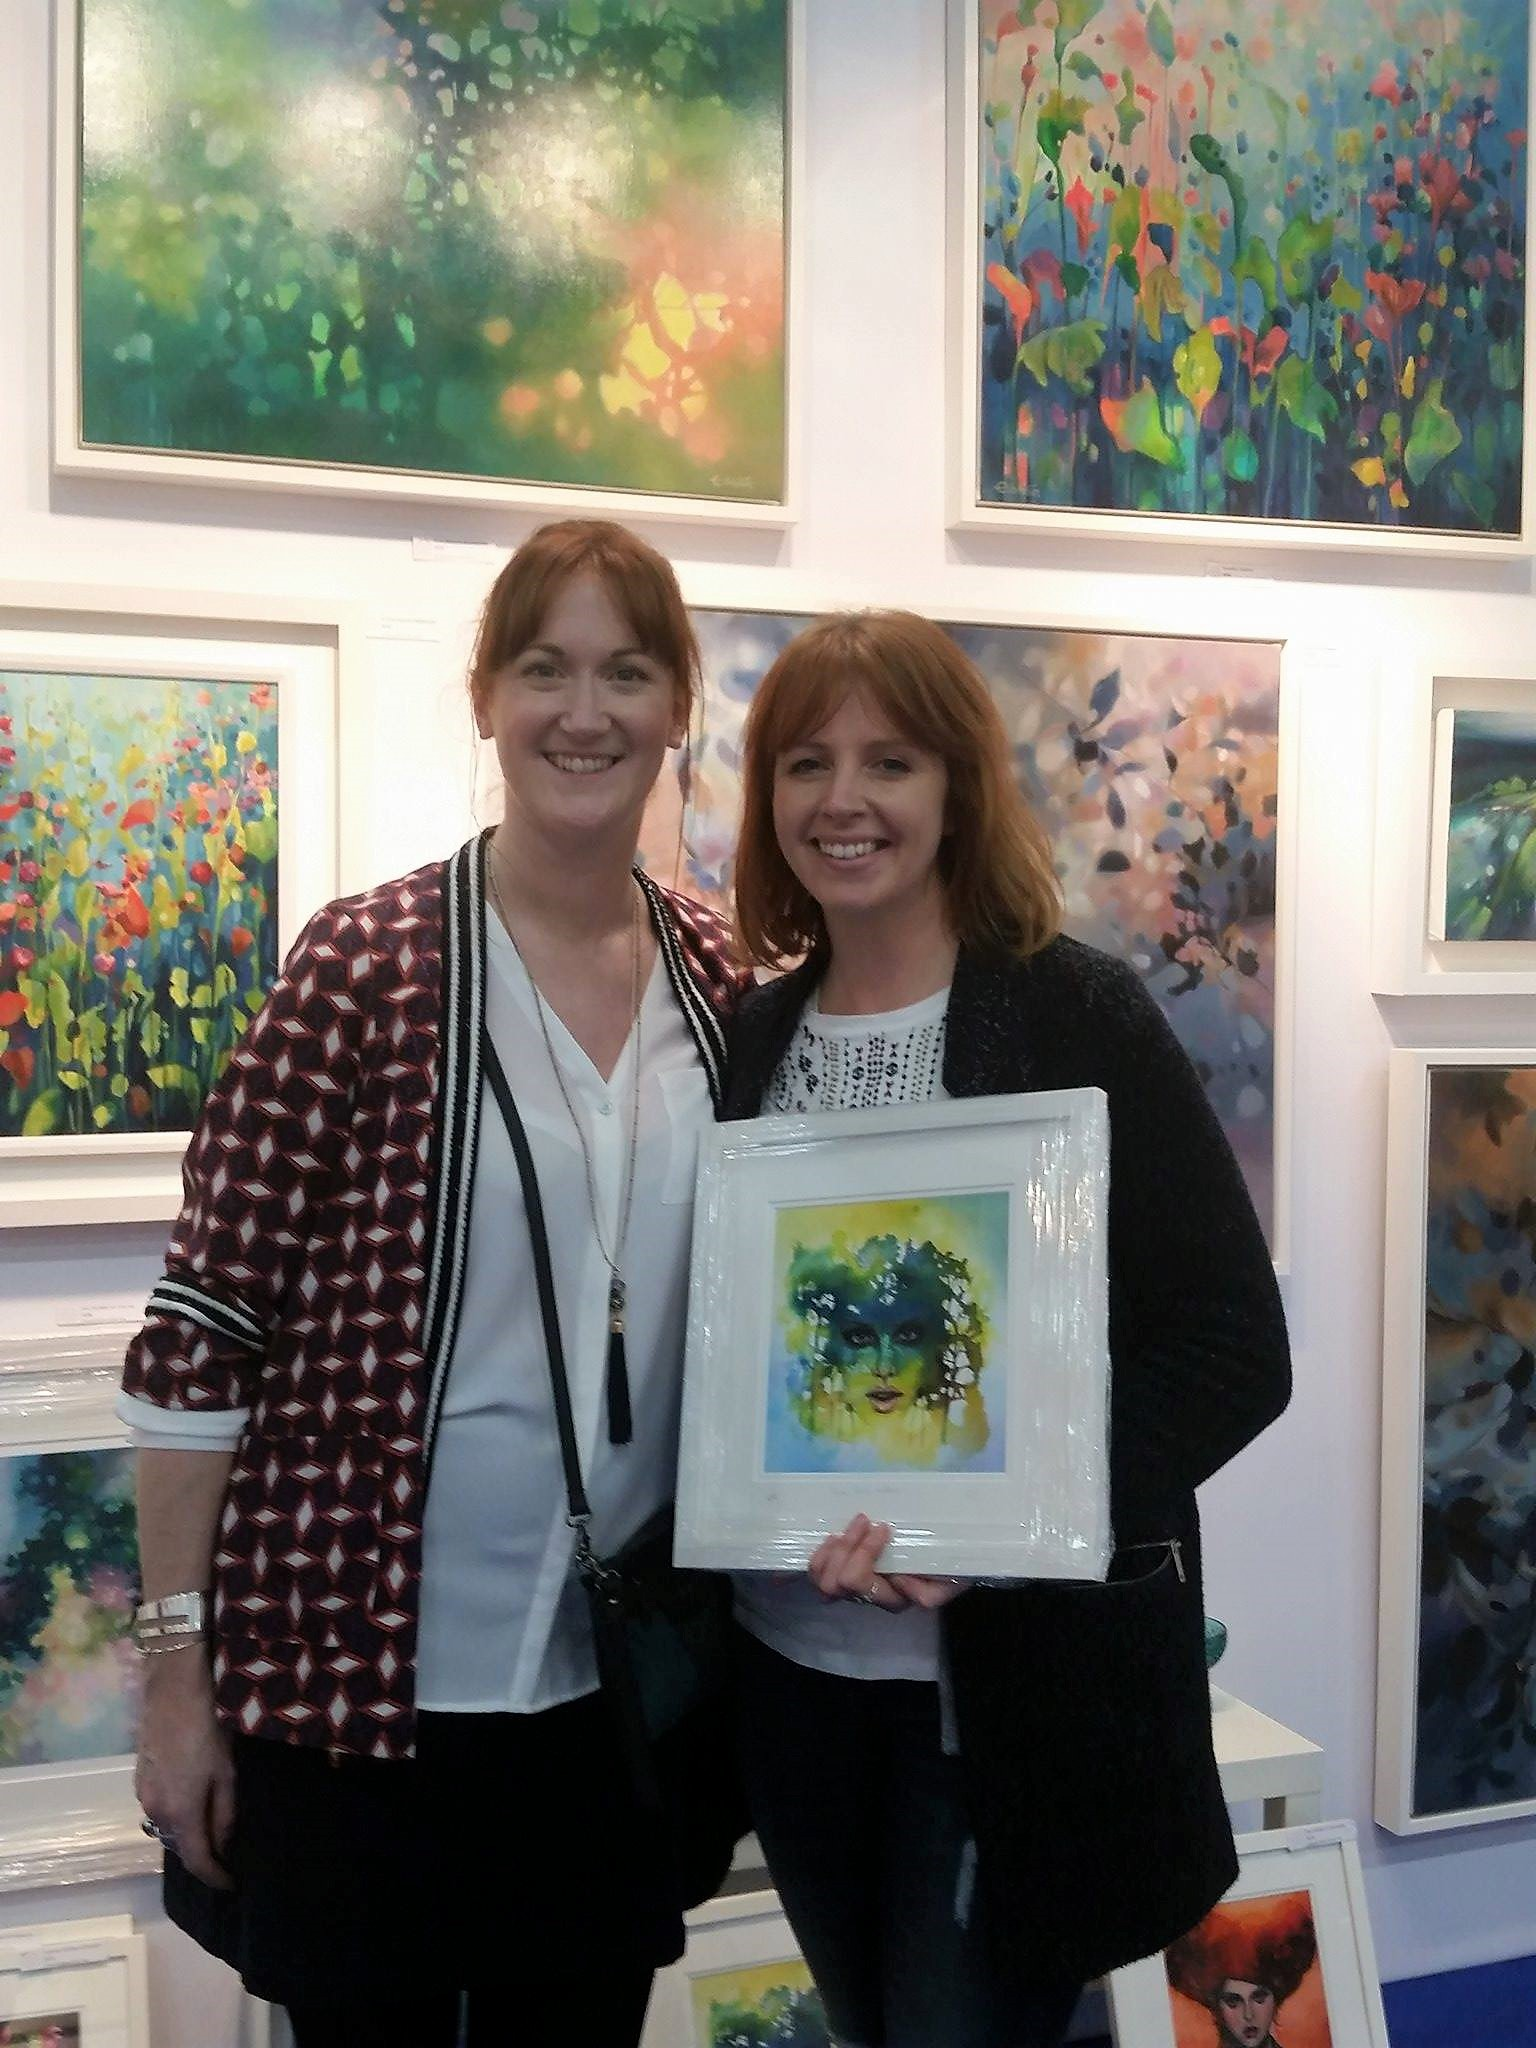 The paintings of Eibhilin Crossan Art at Artsource 2017 in the RDS Dublin